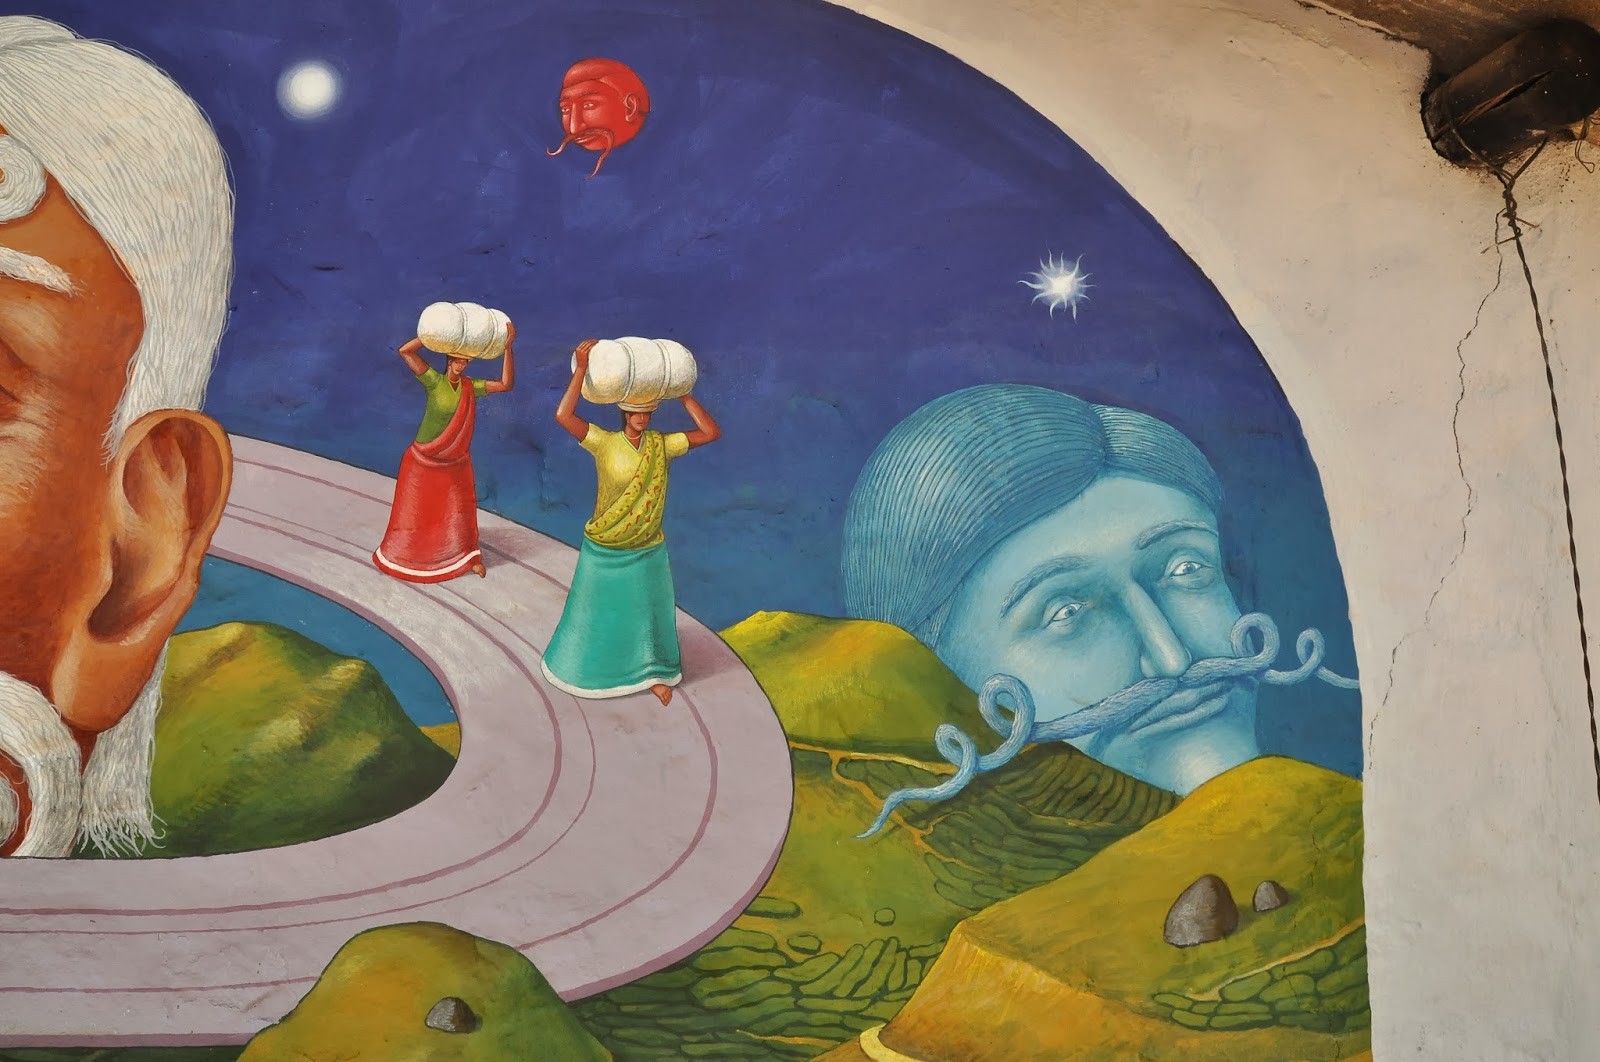 interesni-kazki-visit-of-saturn-new-mural-in-india-07